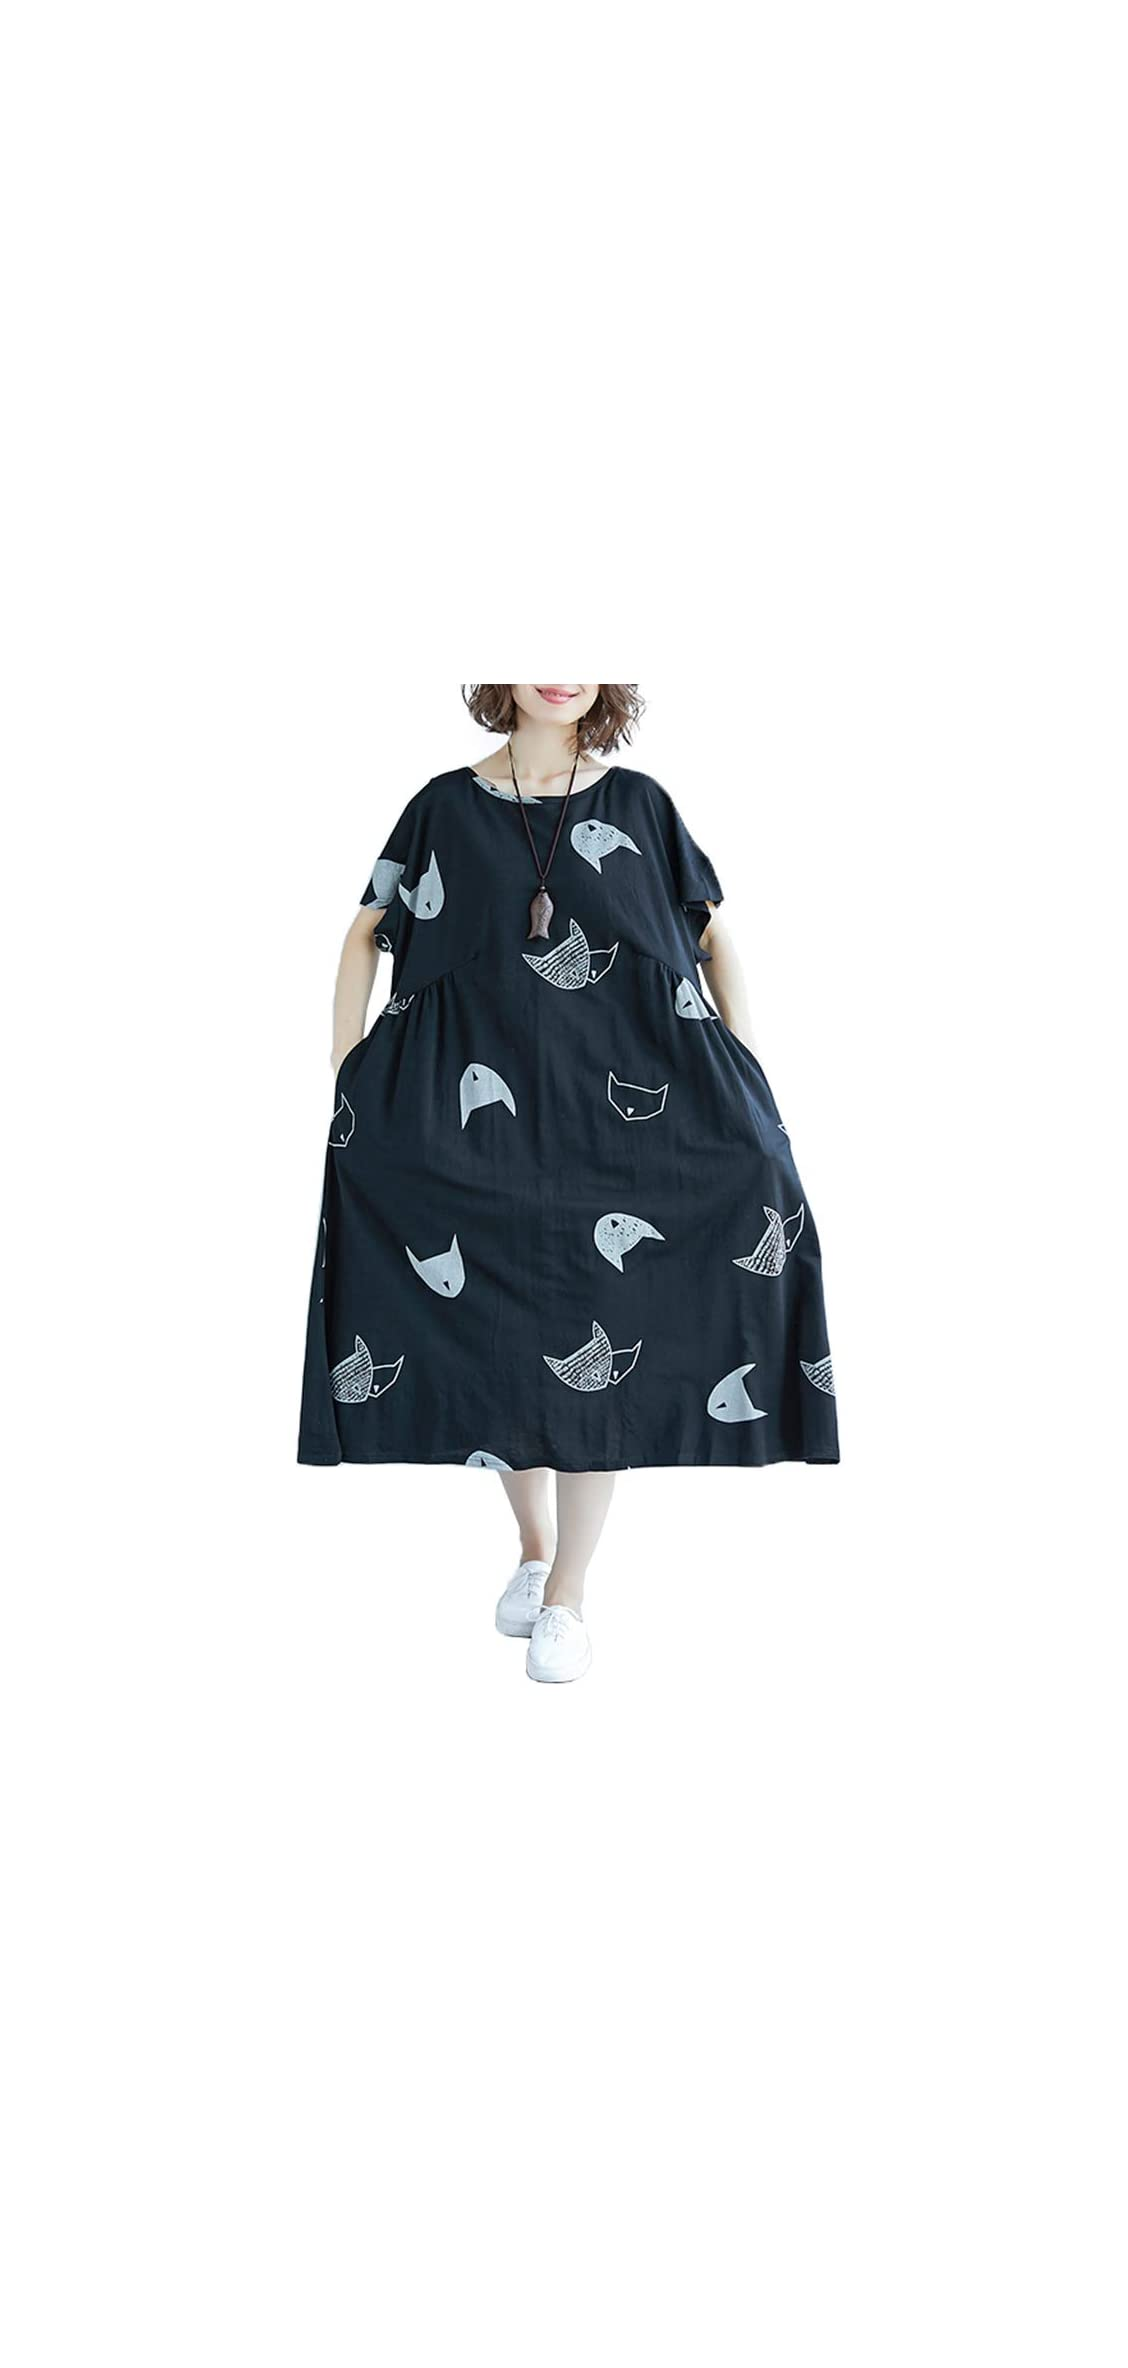 Women Vintage Loose Dress Contrast Color Print Half